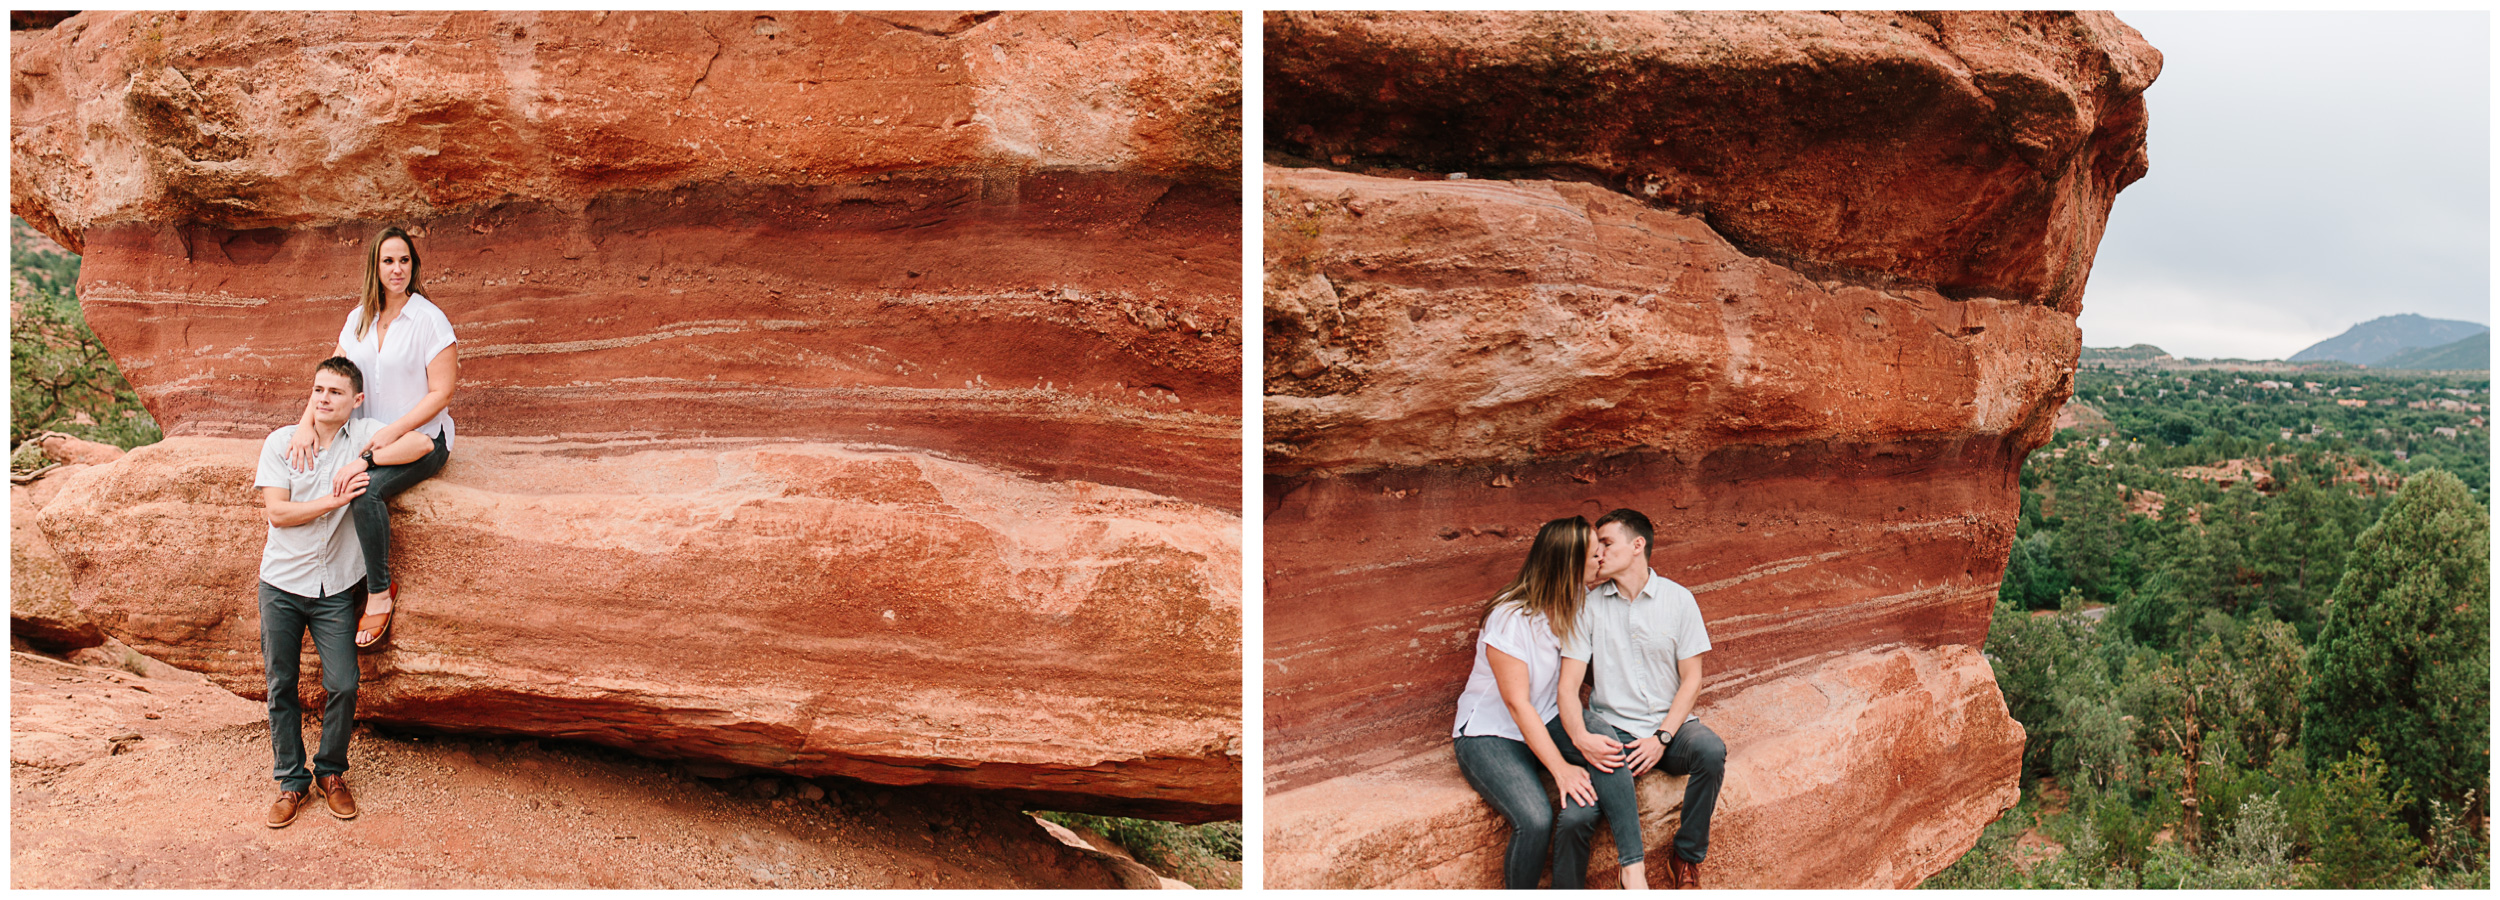 garden_of_the_gods_engagement_12.jpg